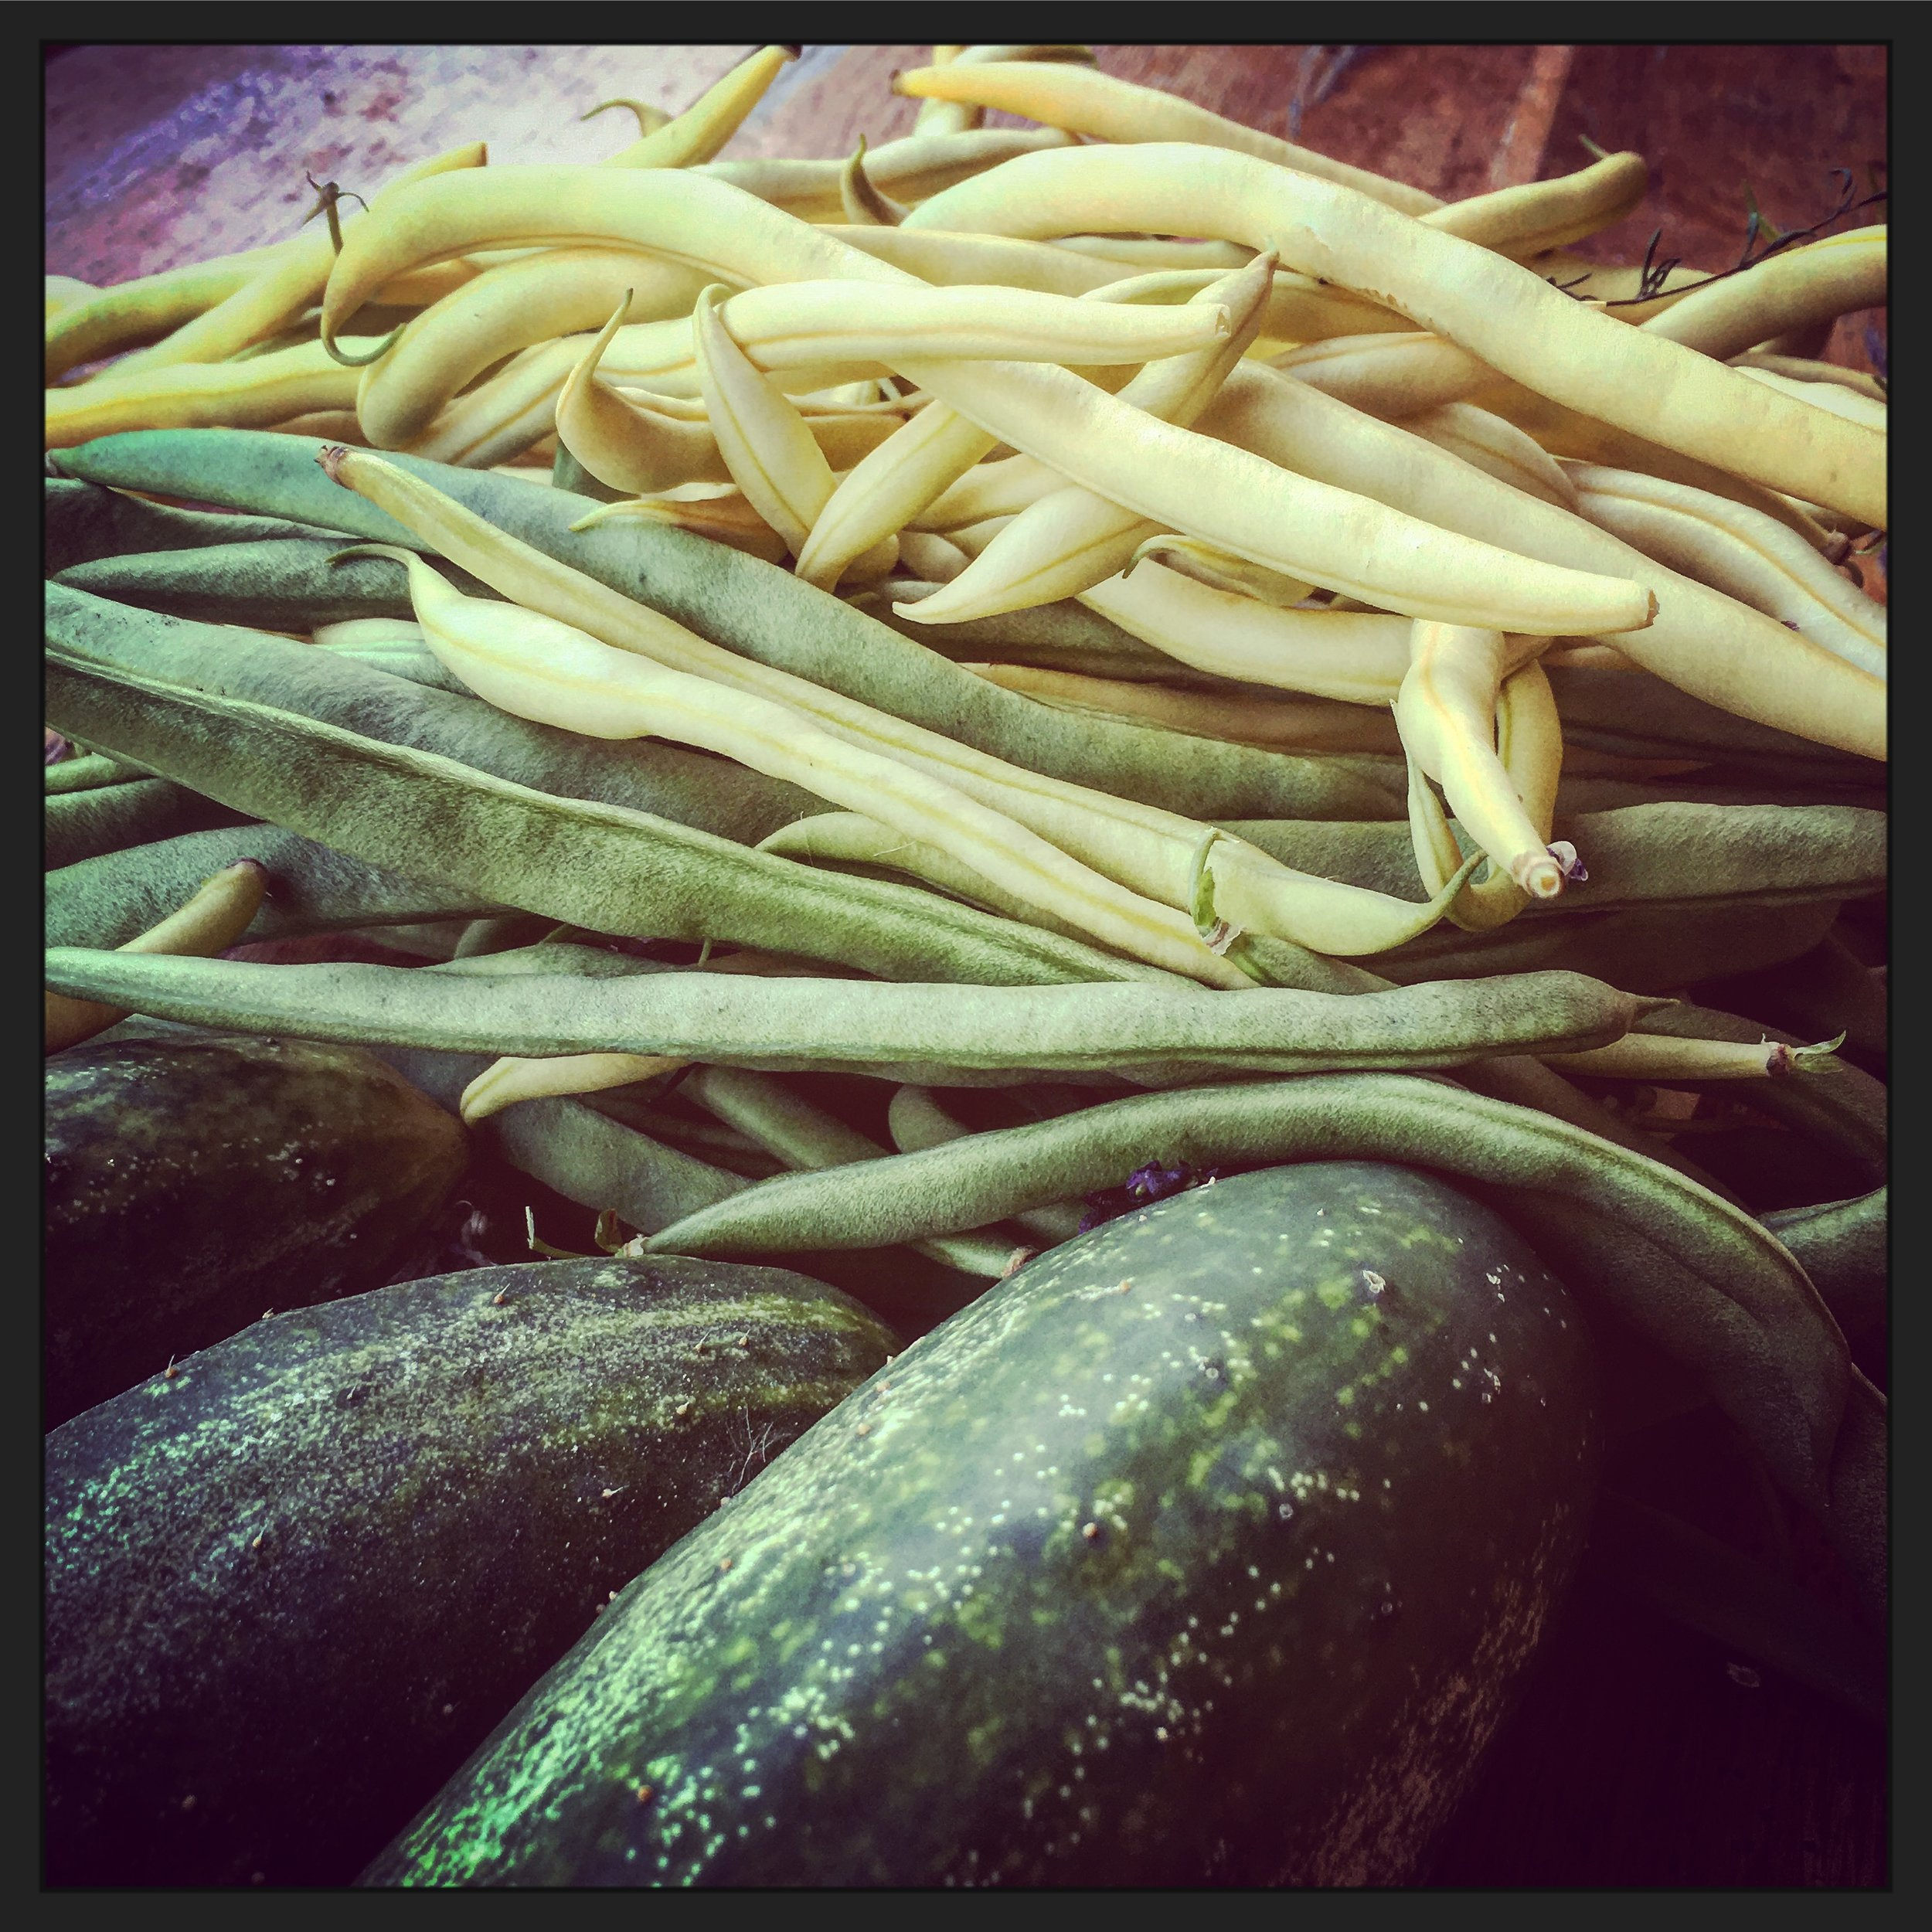 Green beans, yellow beans, cucumbers...